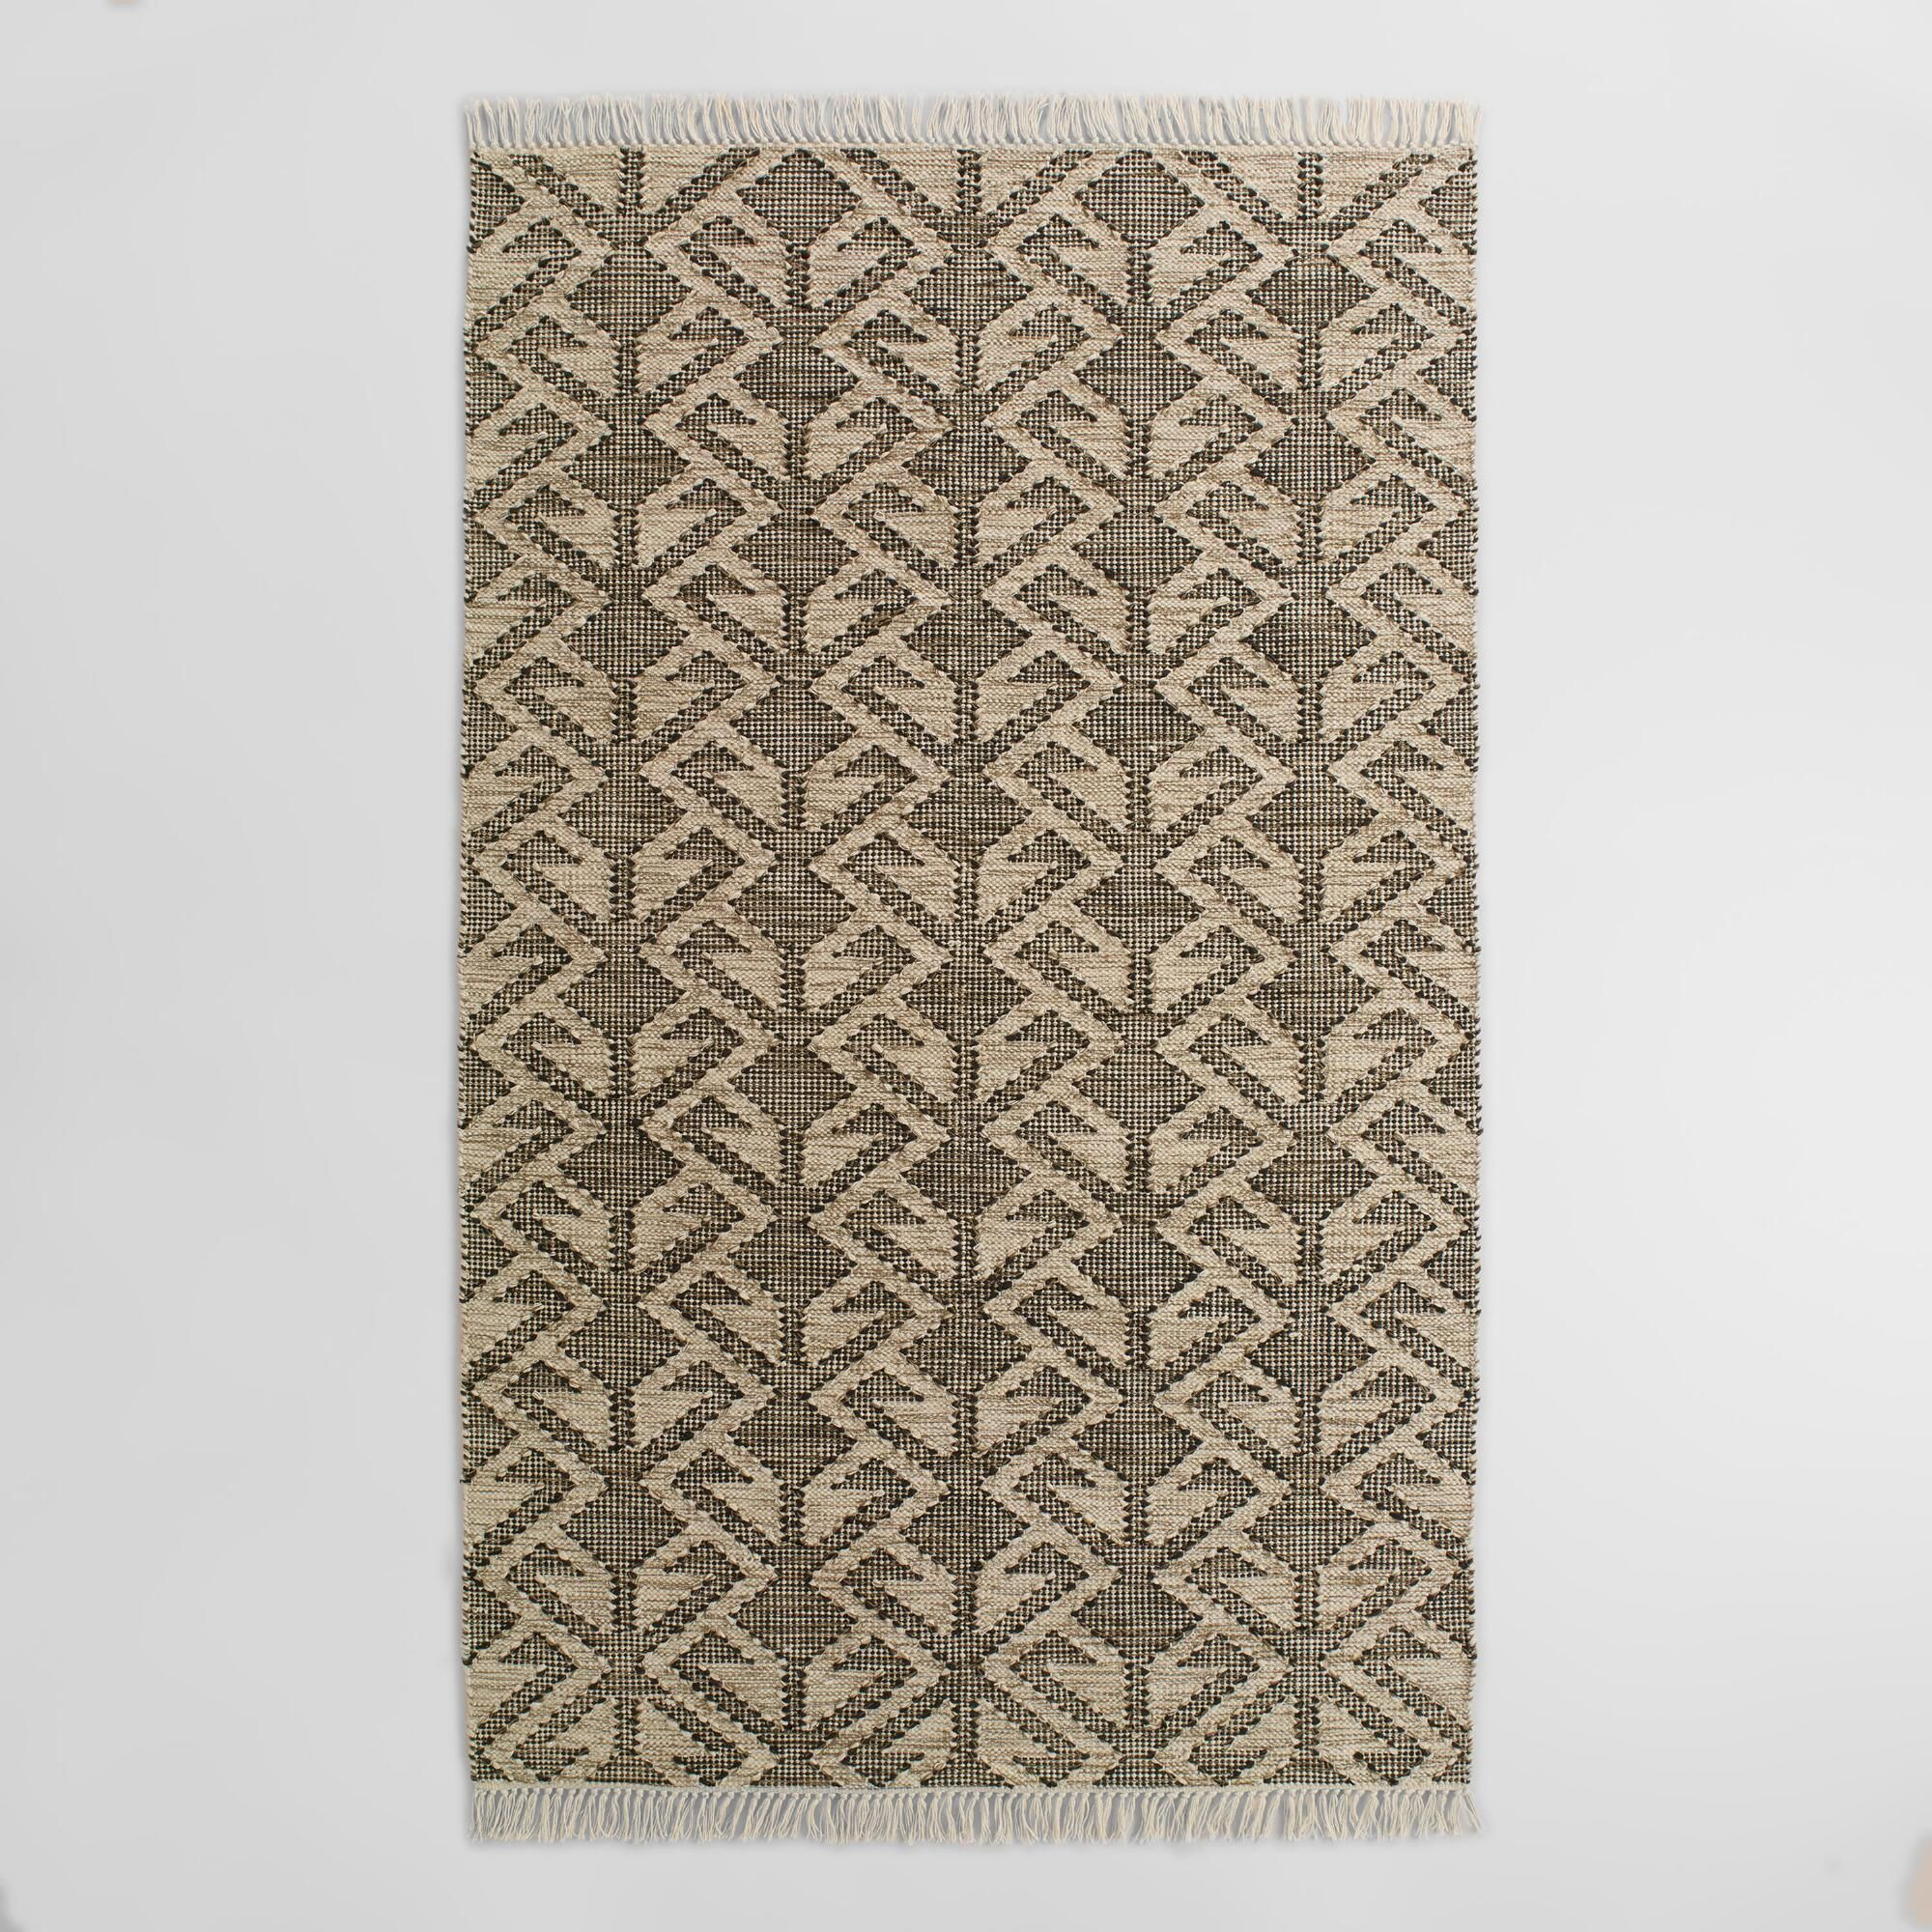 Hand Woven In India From Recycled Plastic Bottles Our Graphic Design Area Rug Is A